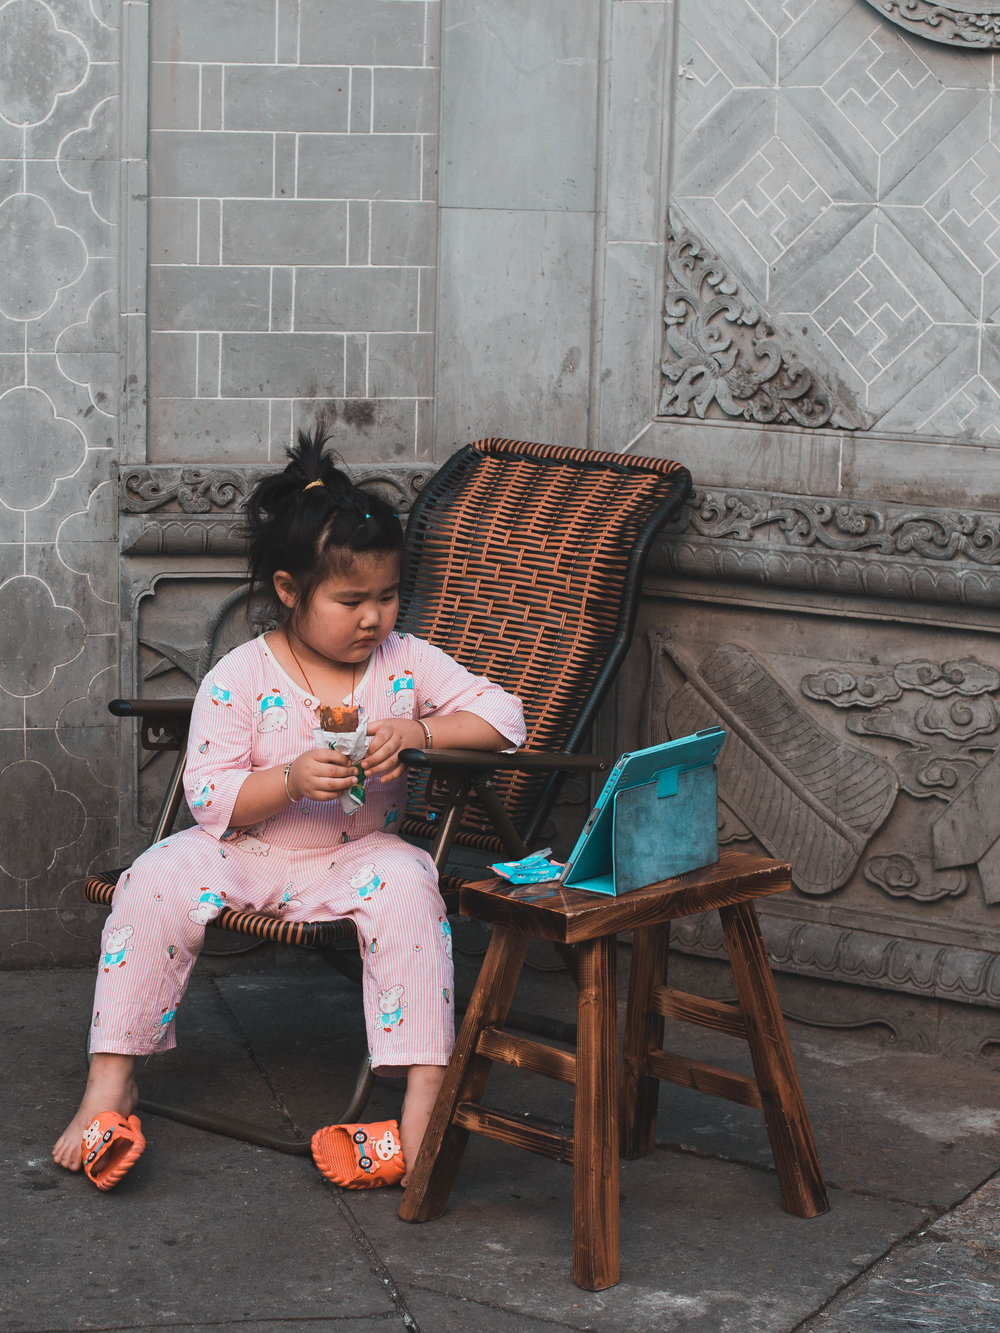 A little girl living in Nanjing's Fuzimiao district.